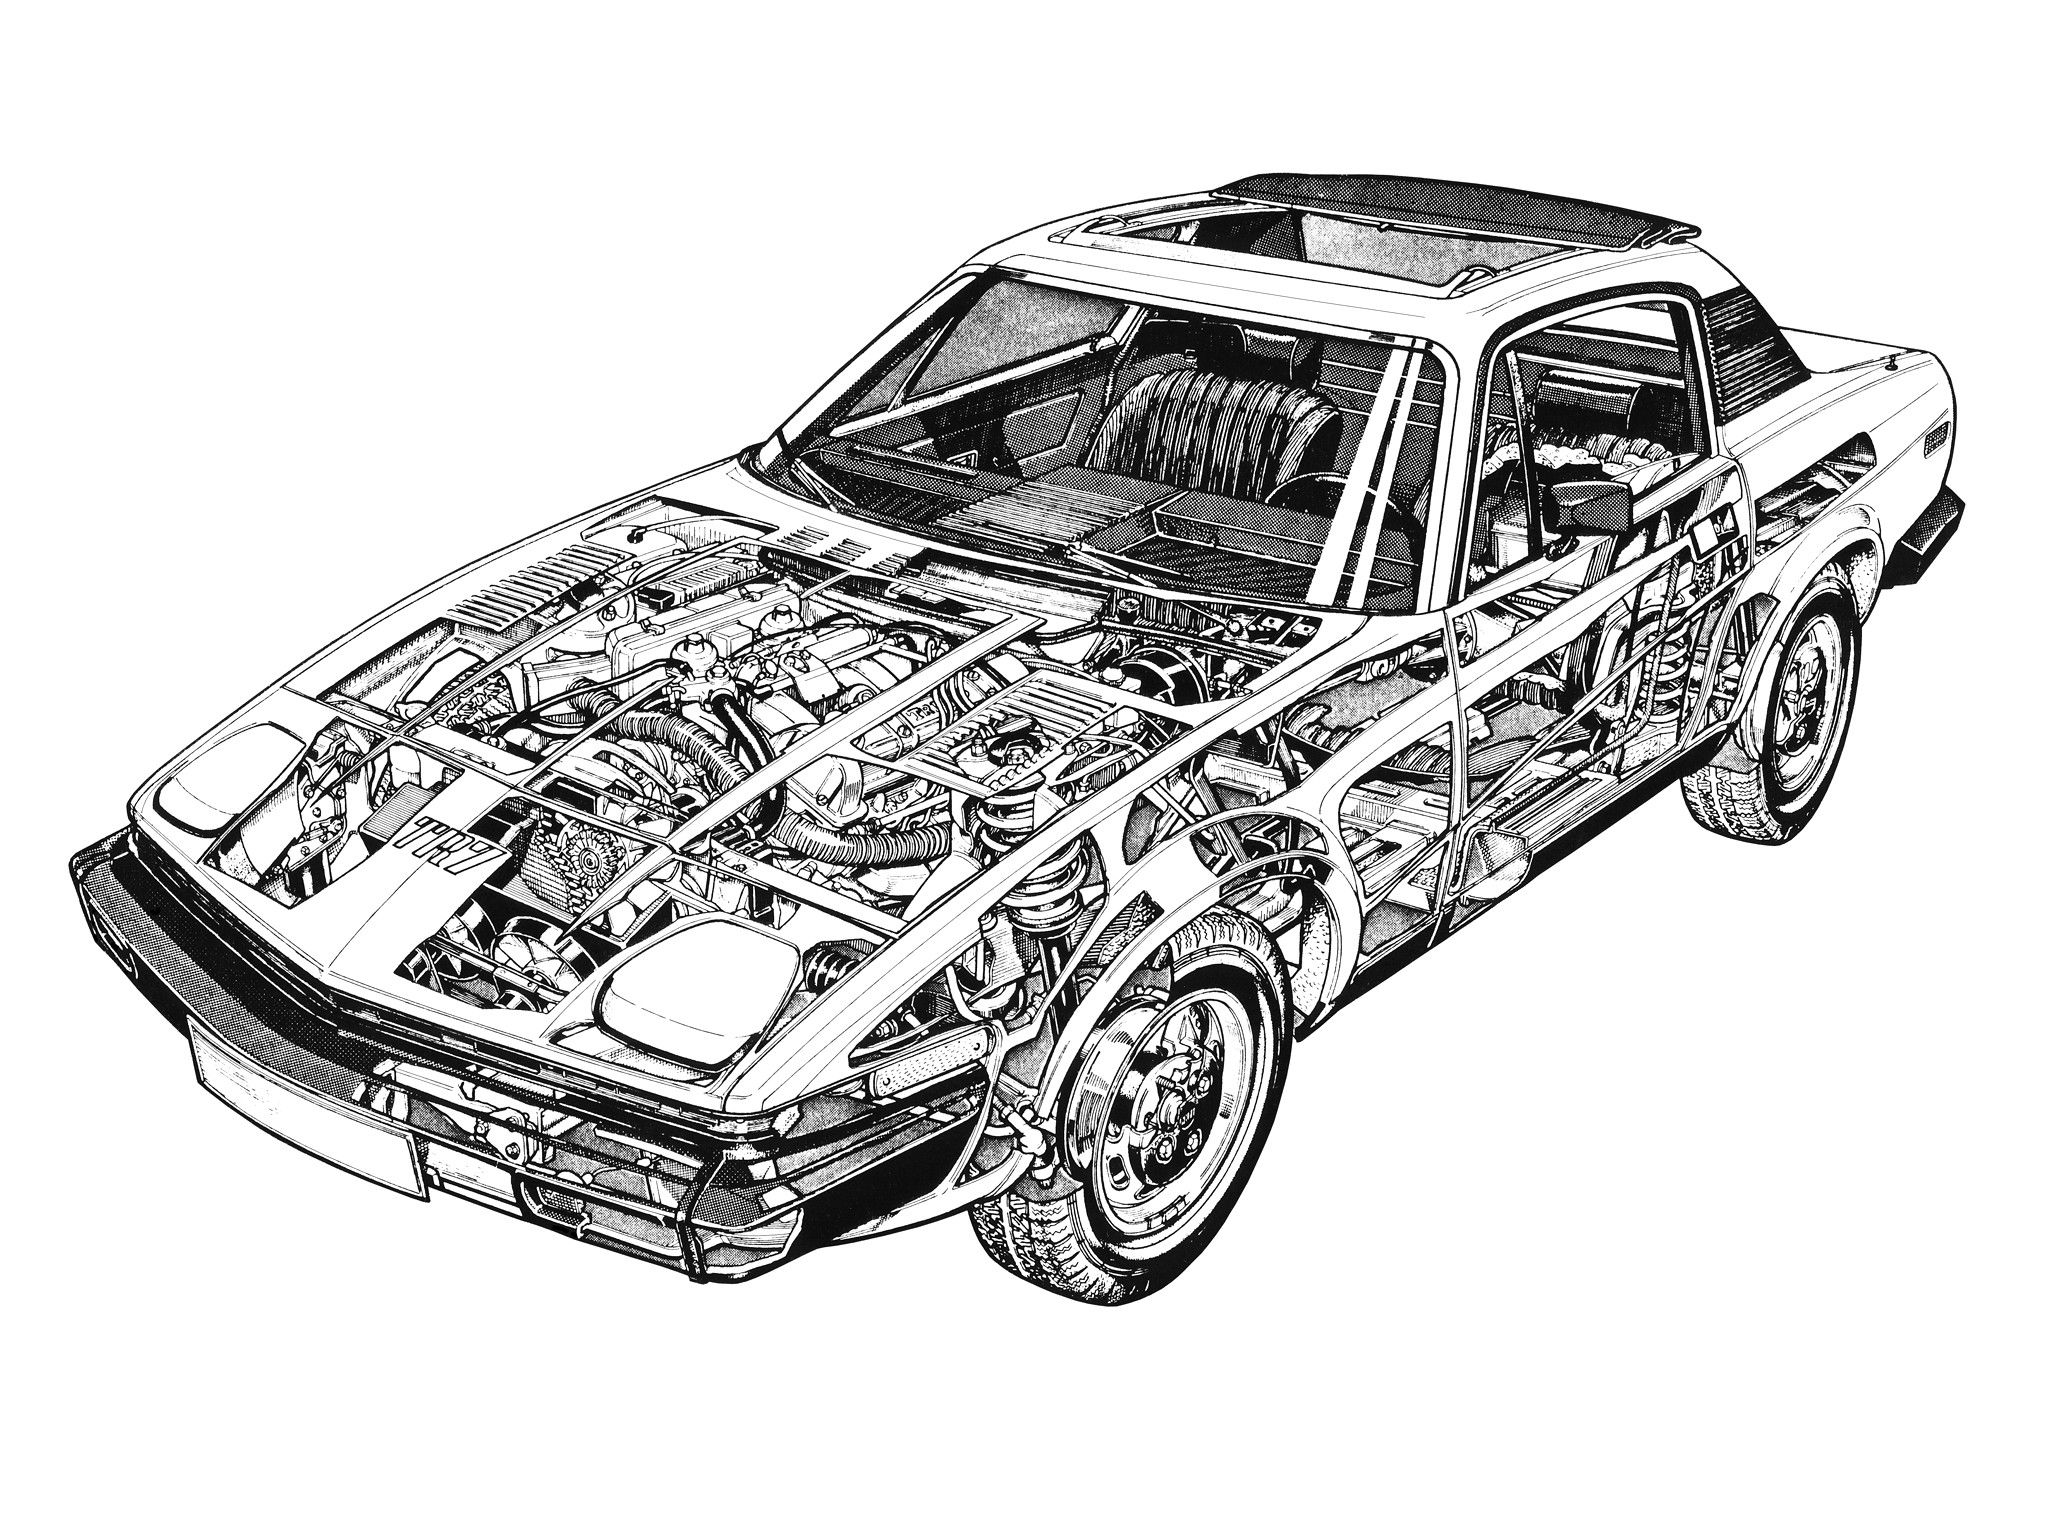 1975-81 Triumph TR7 (US specs) - Illustrated by Terry Davey